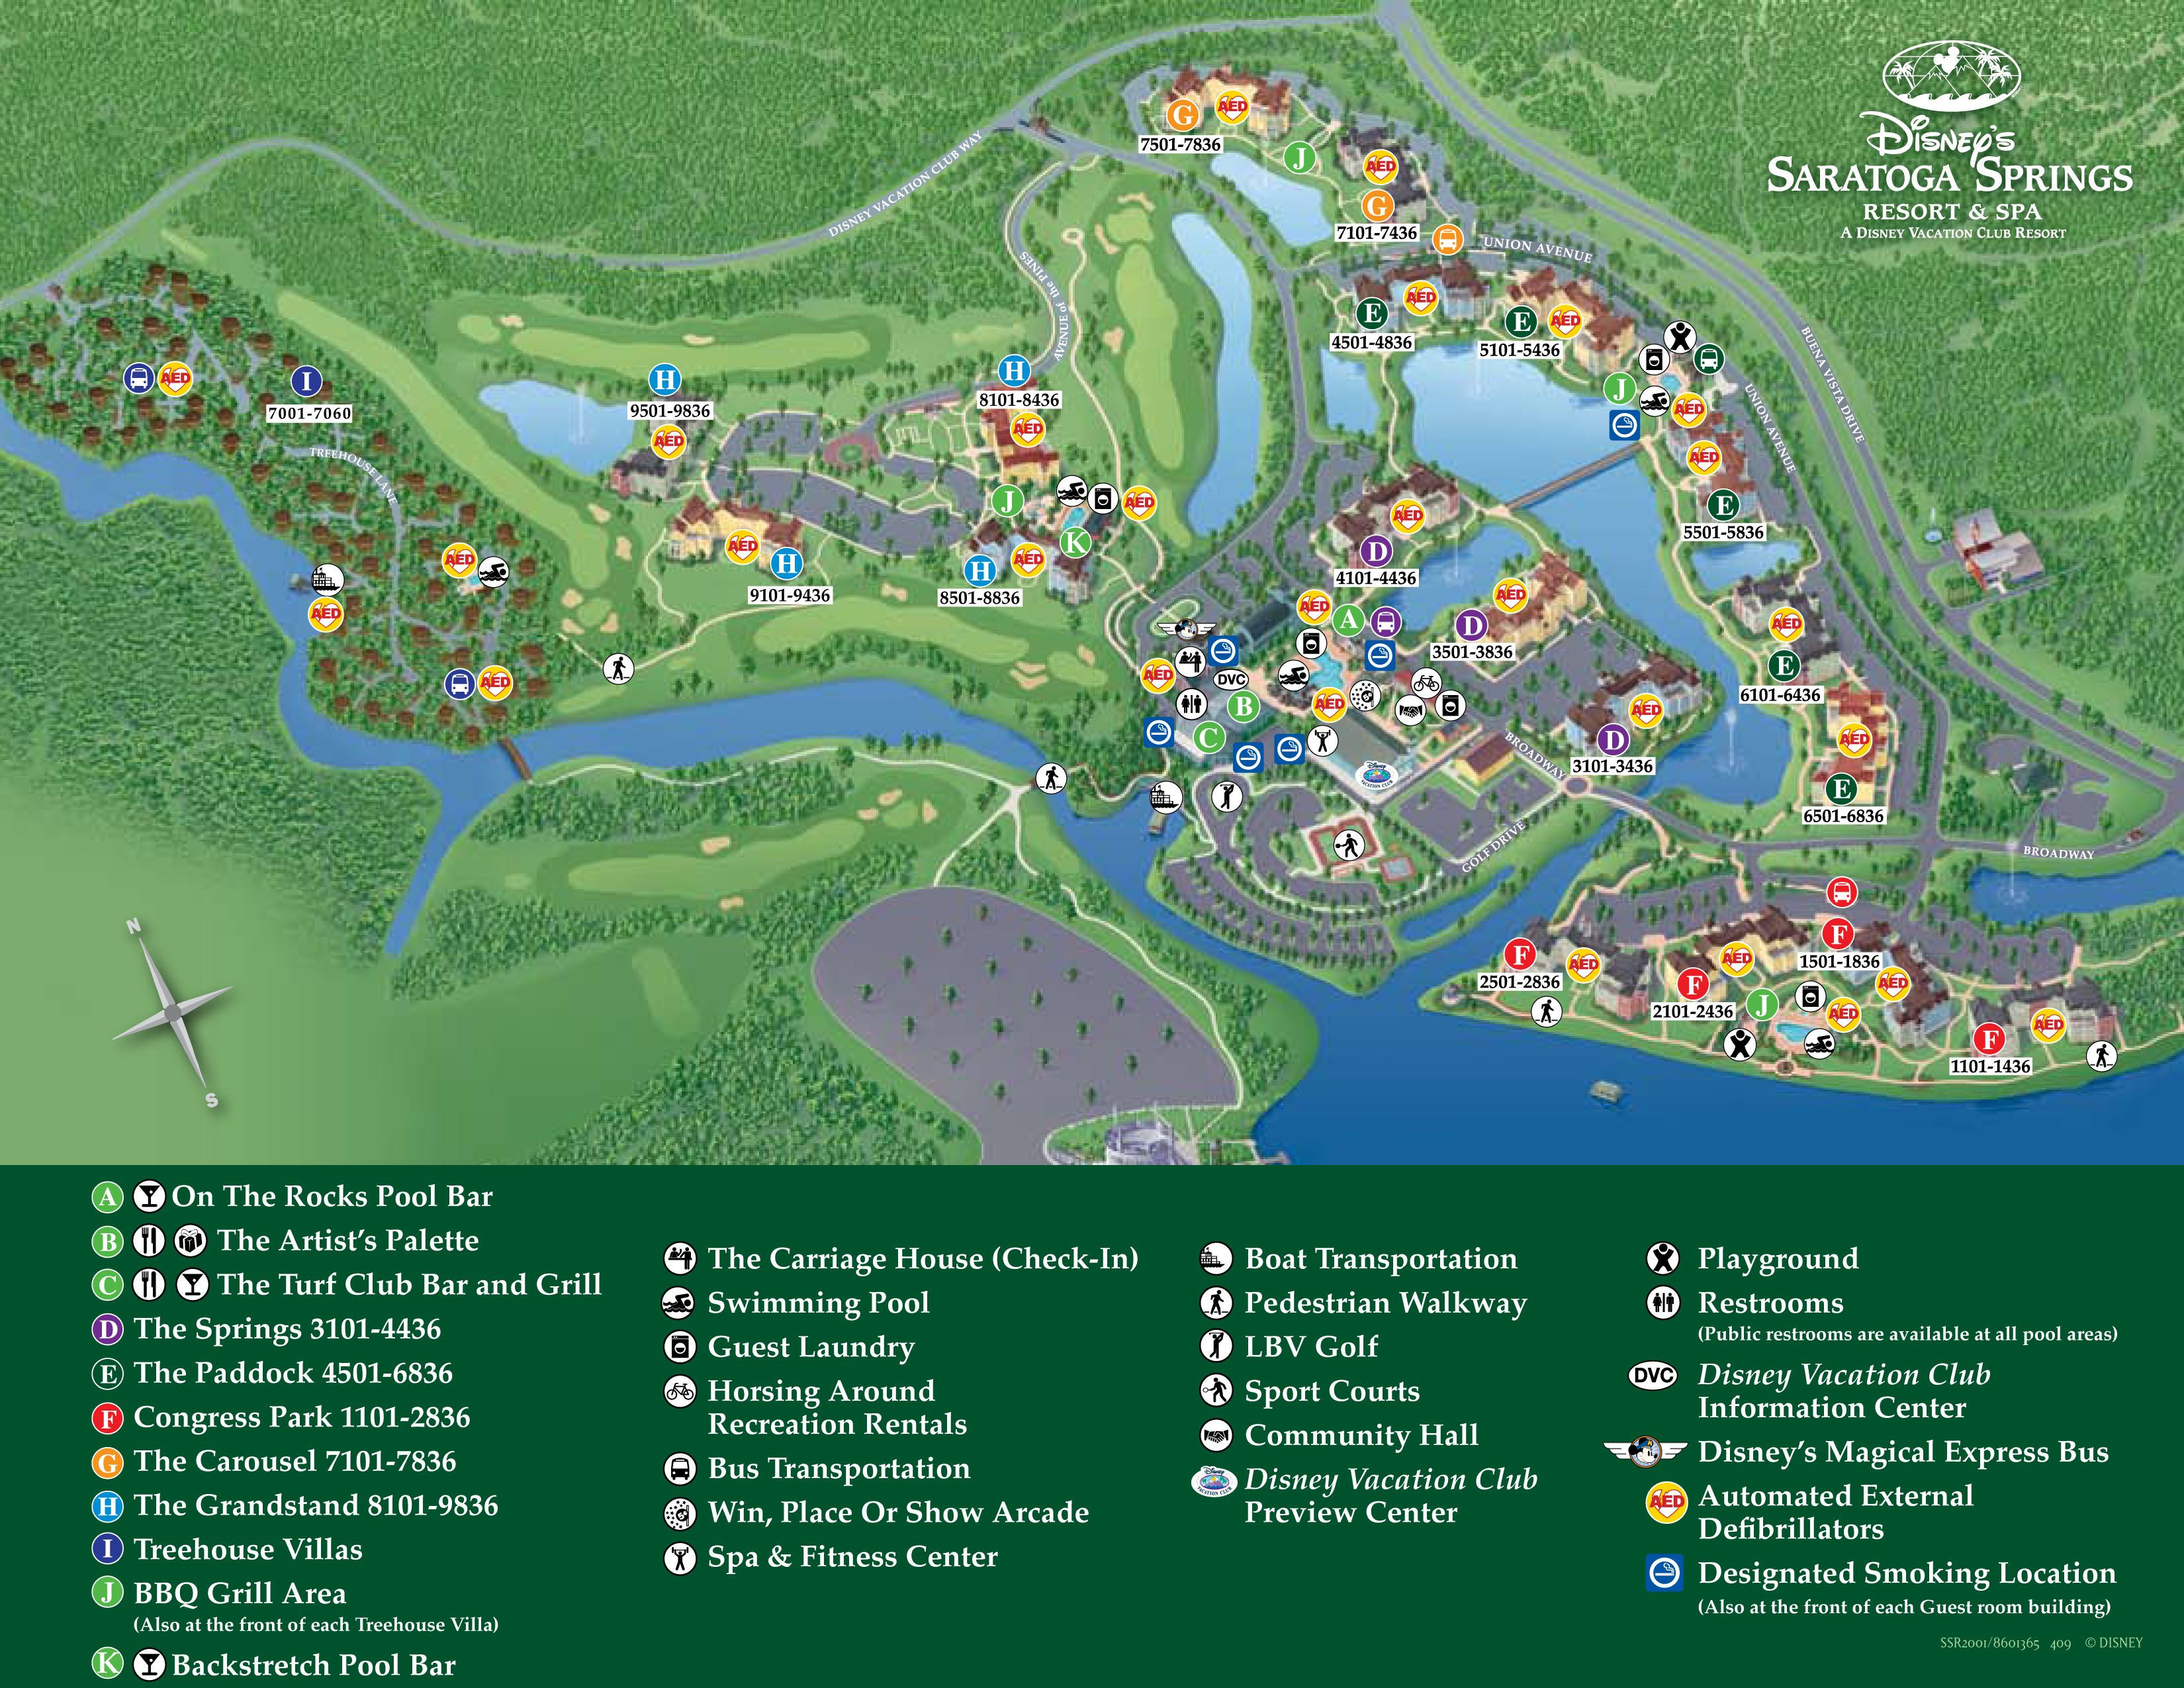 Printable Map Disney Springs Luxury Saratoga Springs Resort Map Disney World Maps